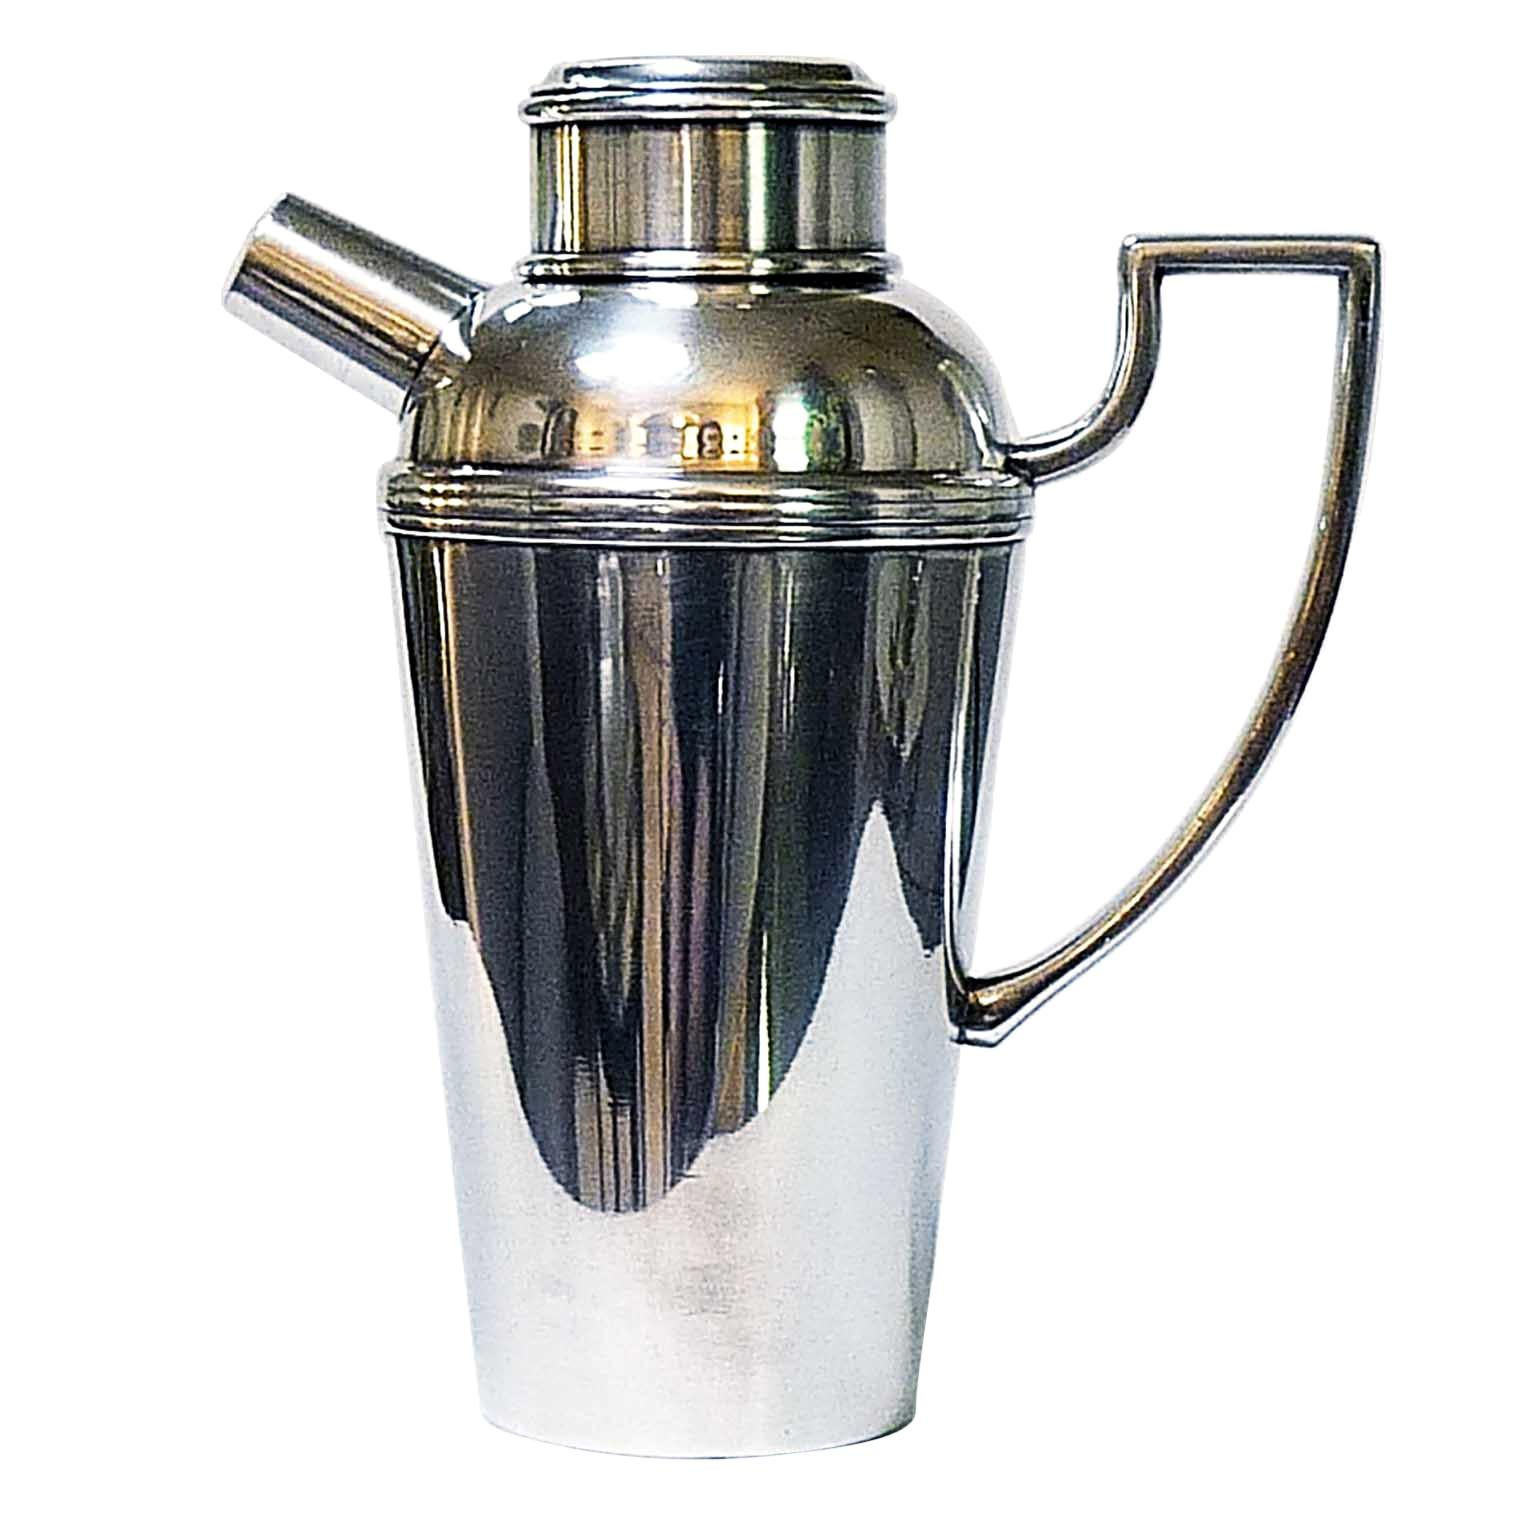 Art Deco Silver Plated Cocktail Shaker by Ercuis